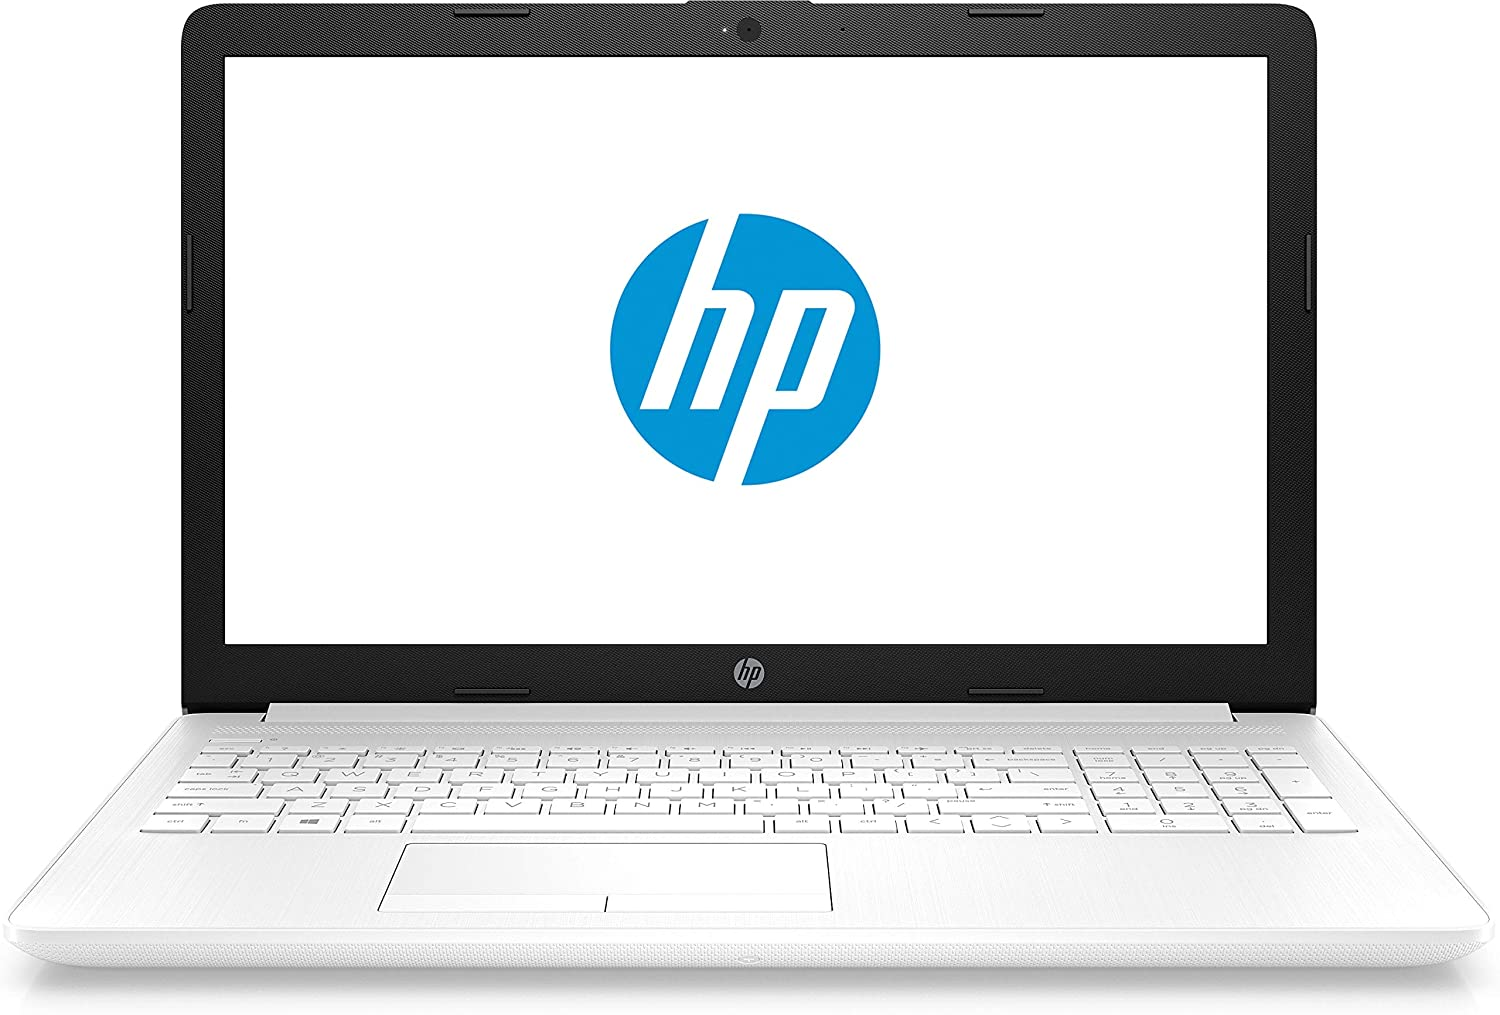 PORTÁTIL HP 15-DA0143NS - I3-7020U 2.3GHZ - 8GB - 256GB SSD - 15.6/39.6CM HD - DVD RW - HDMI - BT - W10 - Blanco Nieve: Hp: Amazon.es: Informática